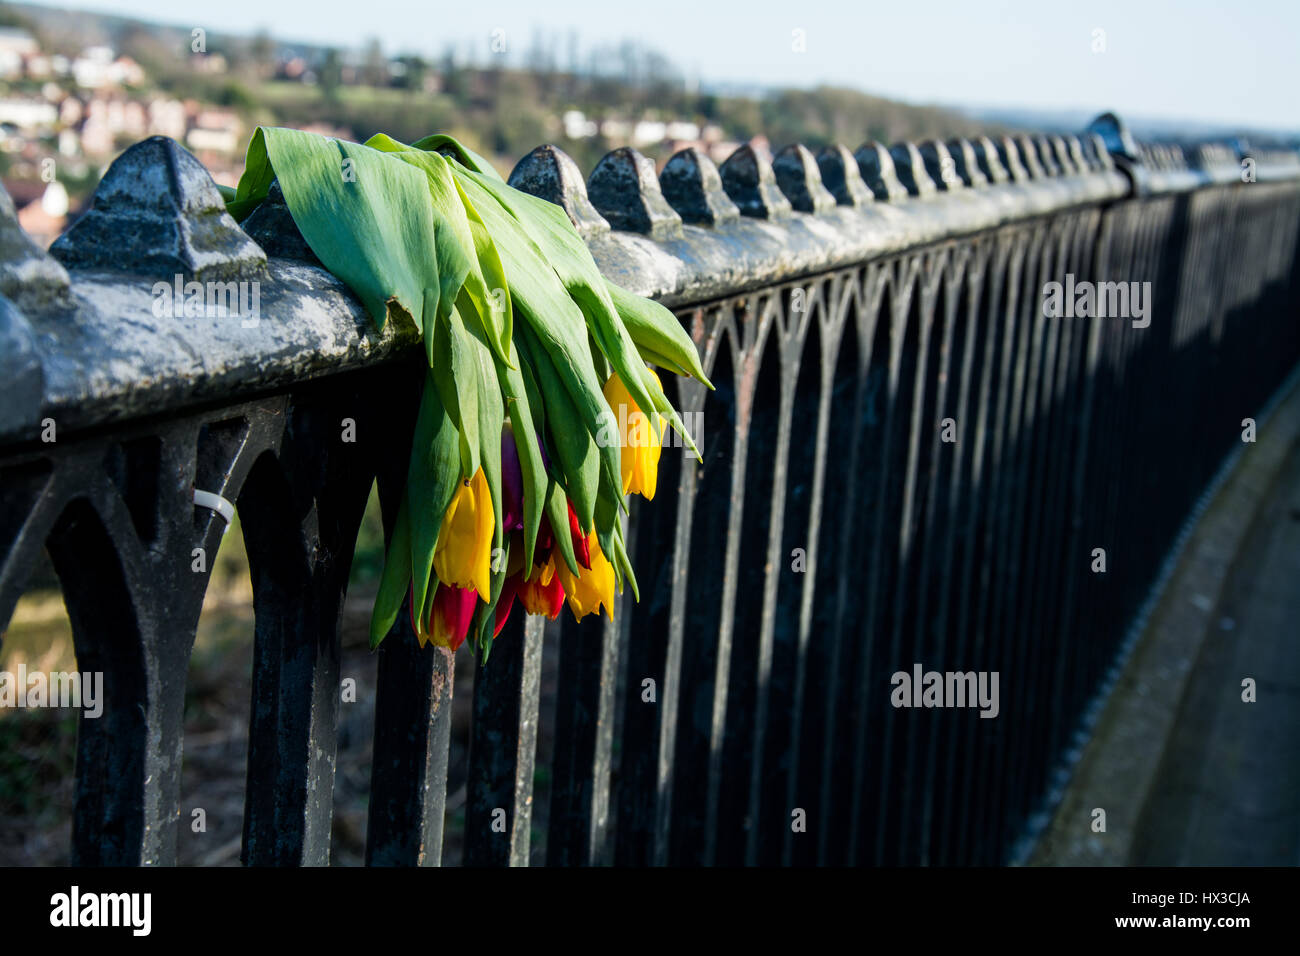 Bunch of red and yellow tulips drooping over a railing. Symbolic of sadness, grief and loss. - Stock Image